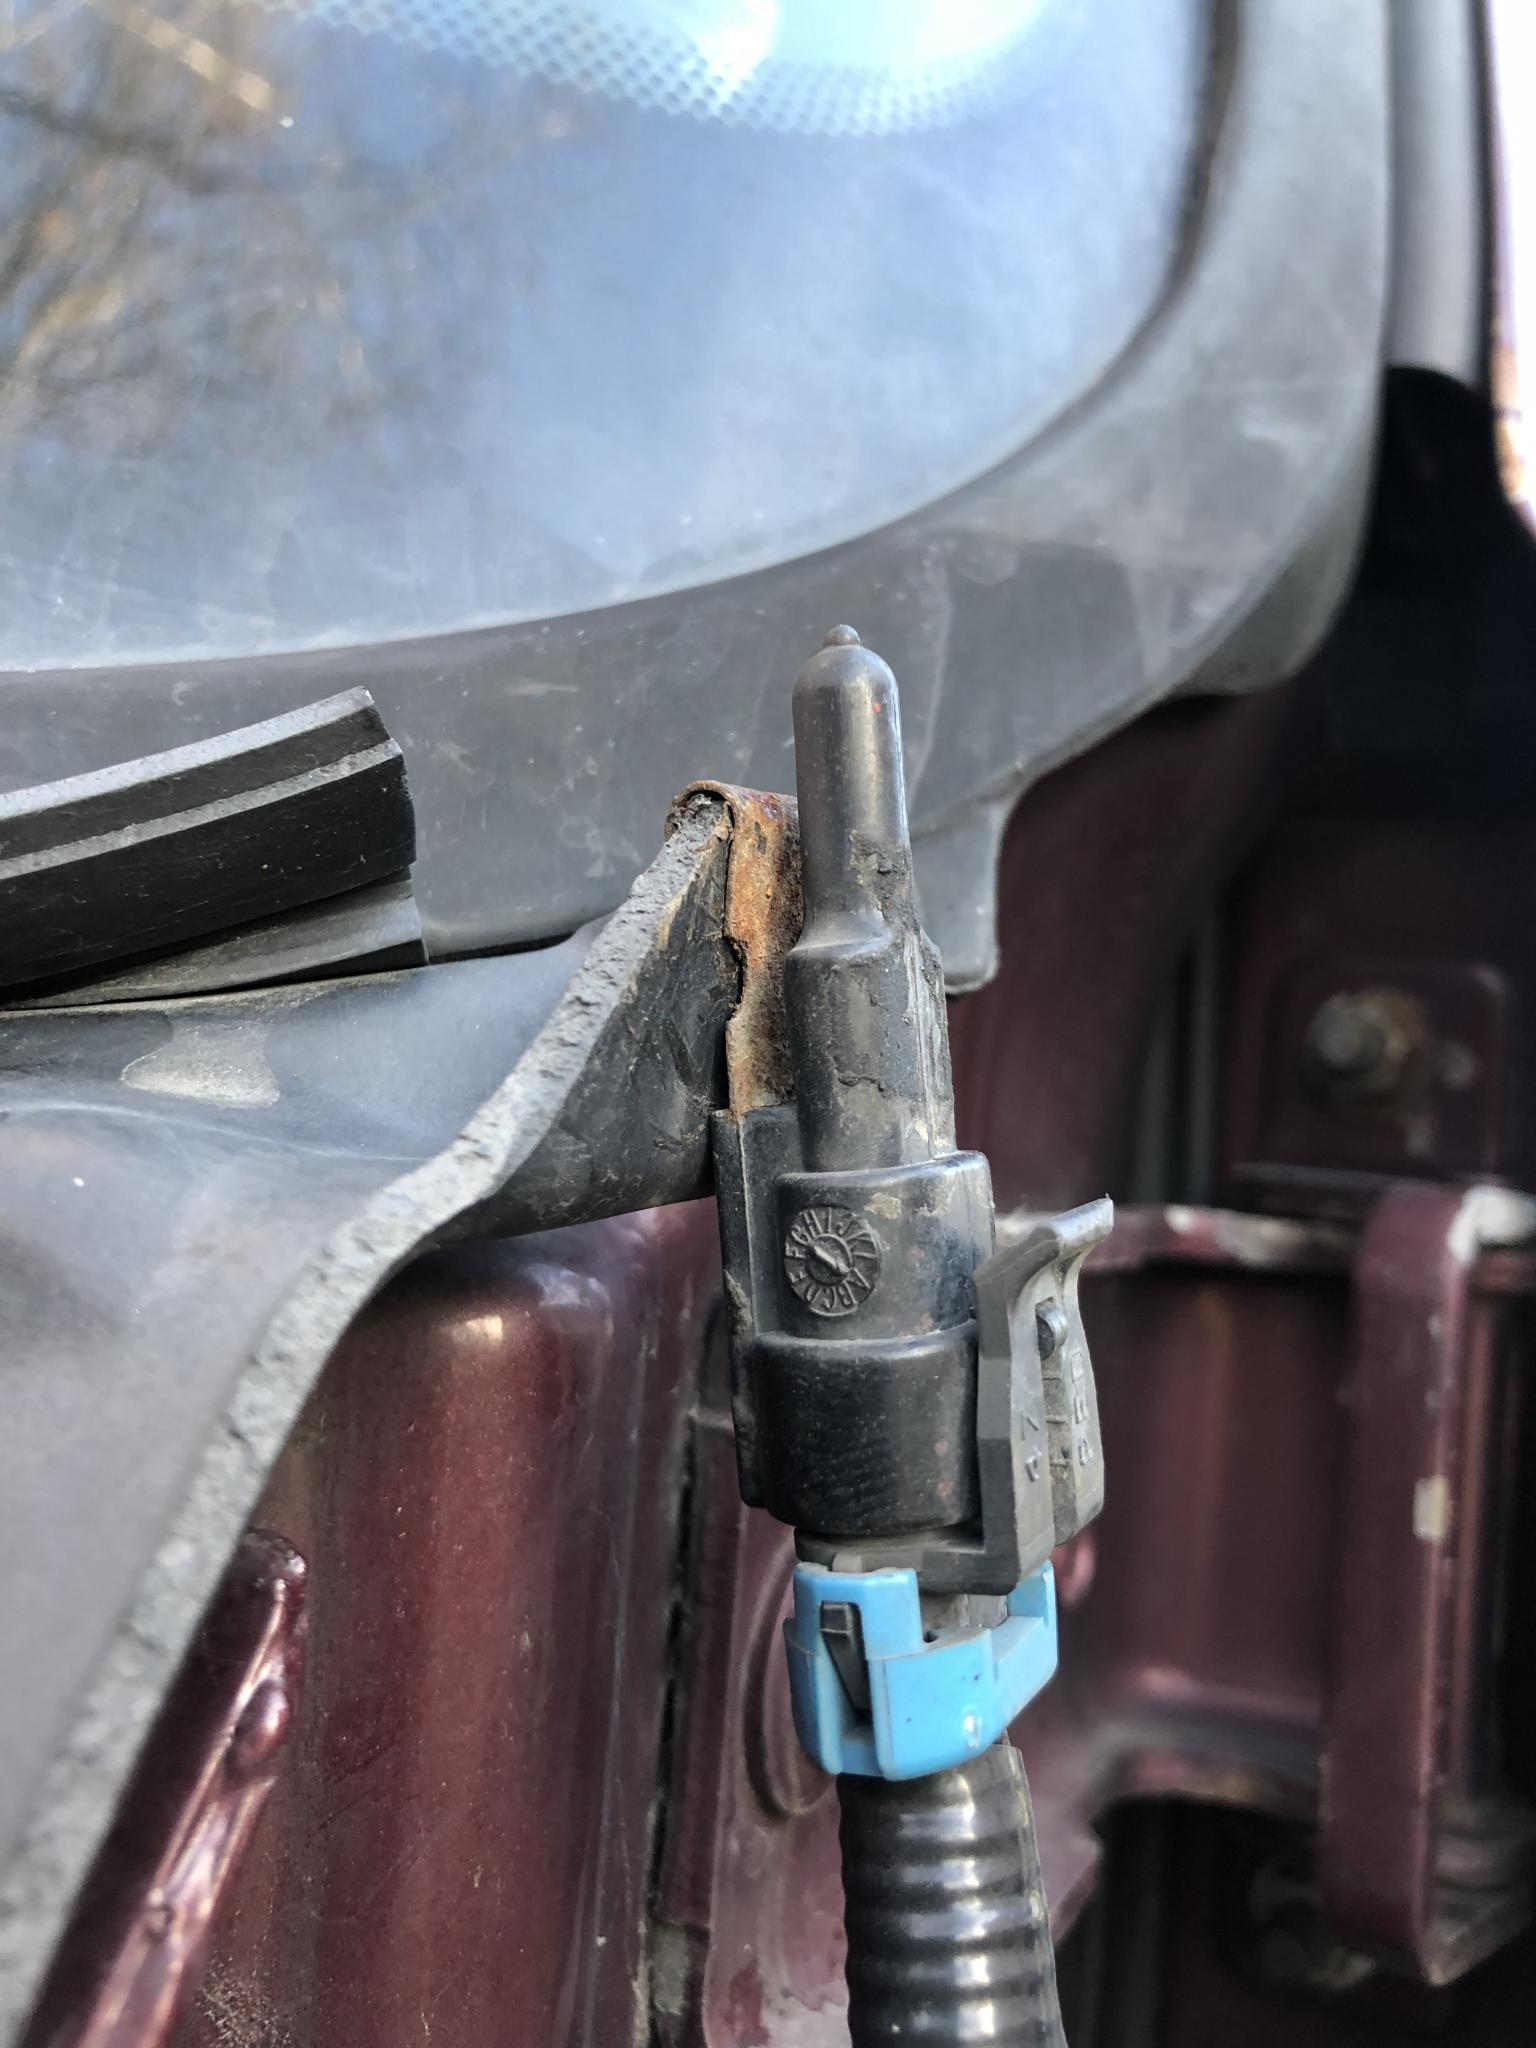 Potential FIRE issue in ProStar HVAC harness and Linear Power Module